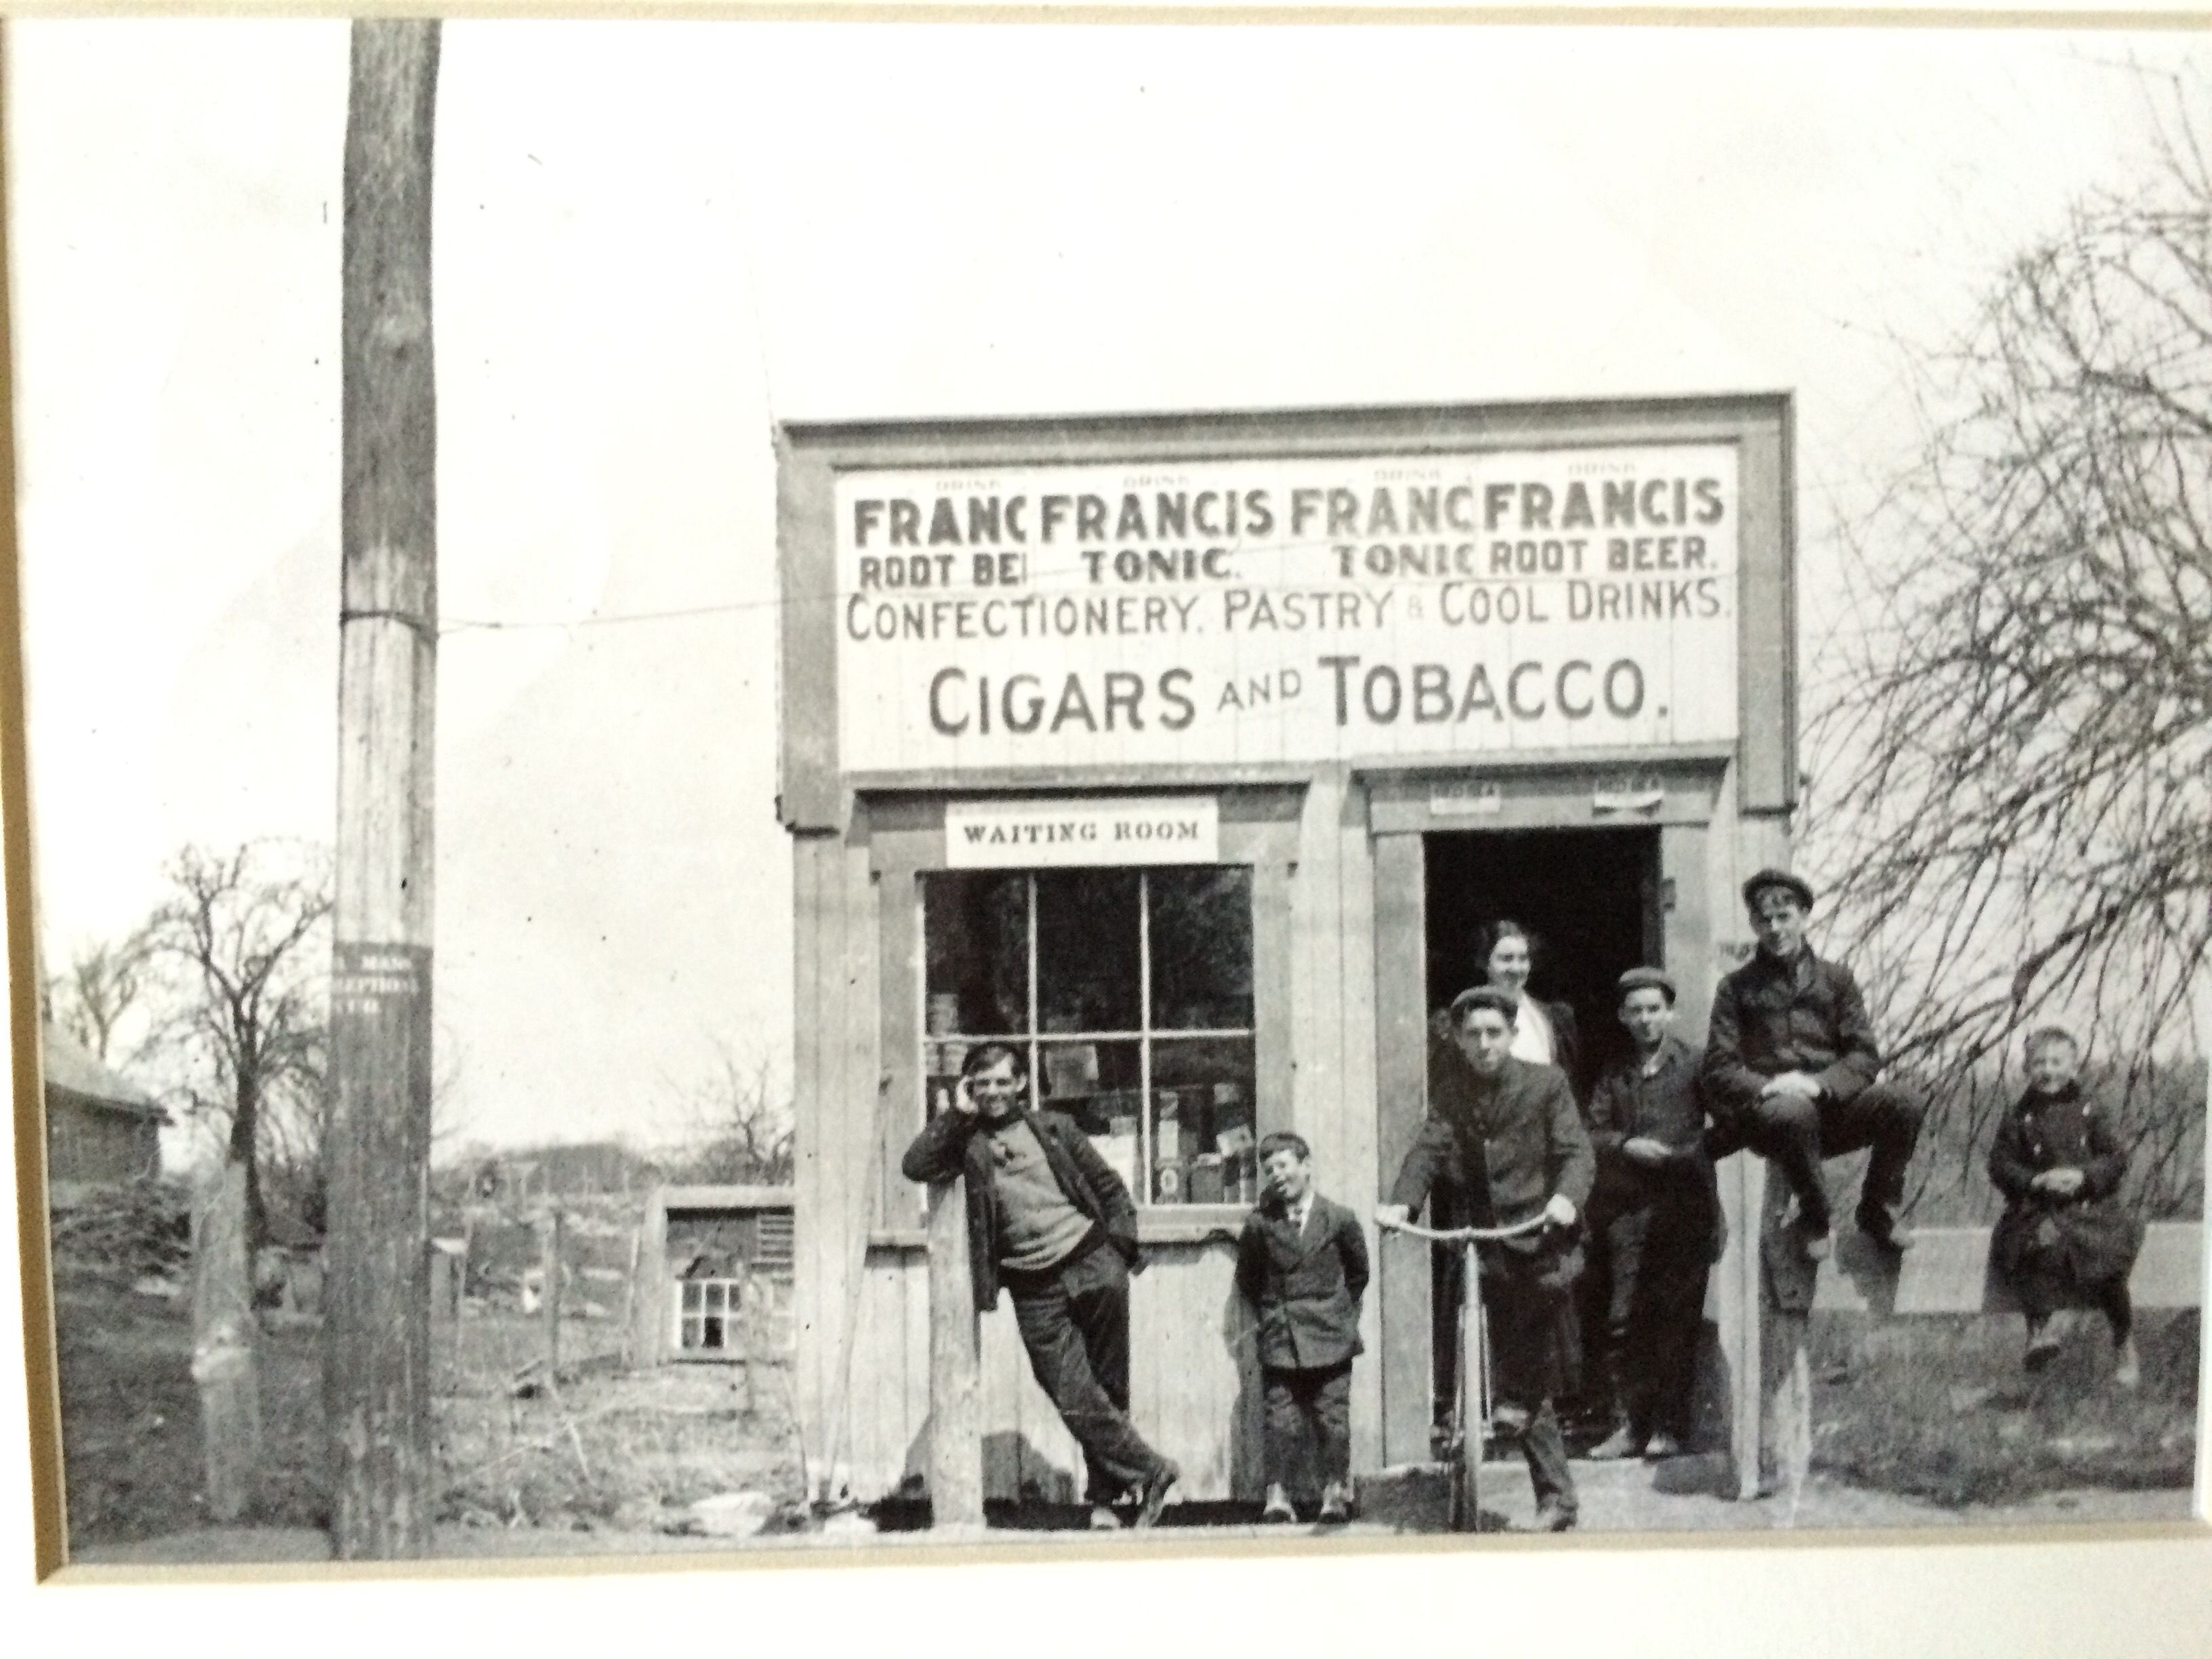 Small store which was located on New Boston Rd. near where